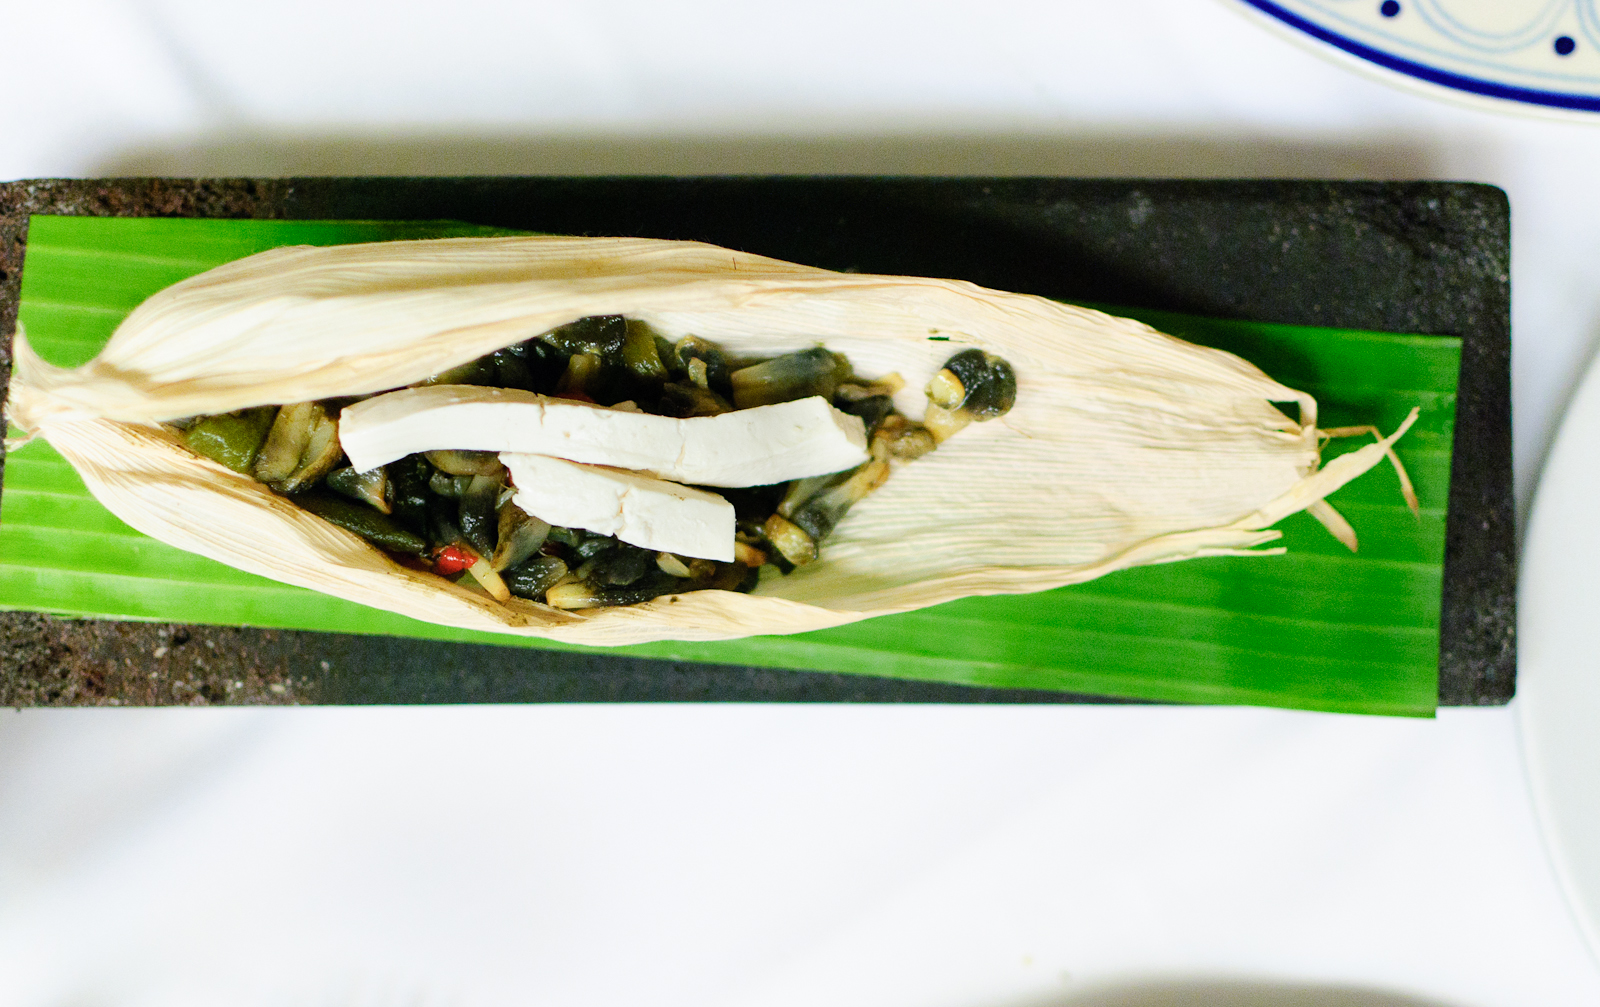 Huitlacoche con rajas poblanas y queso fresco (corn smut with poblano peppers and local cheese)